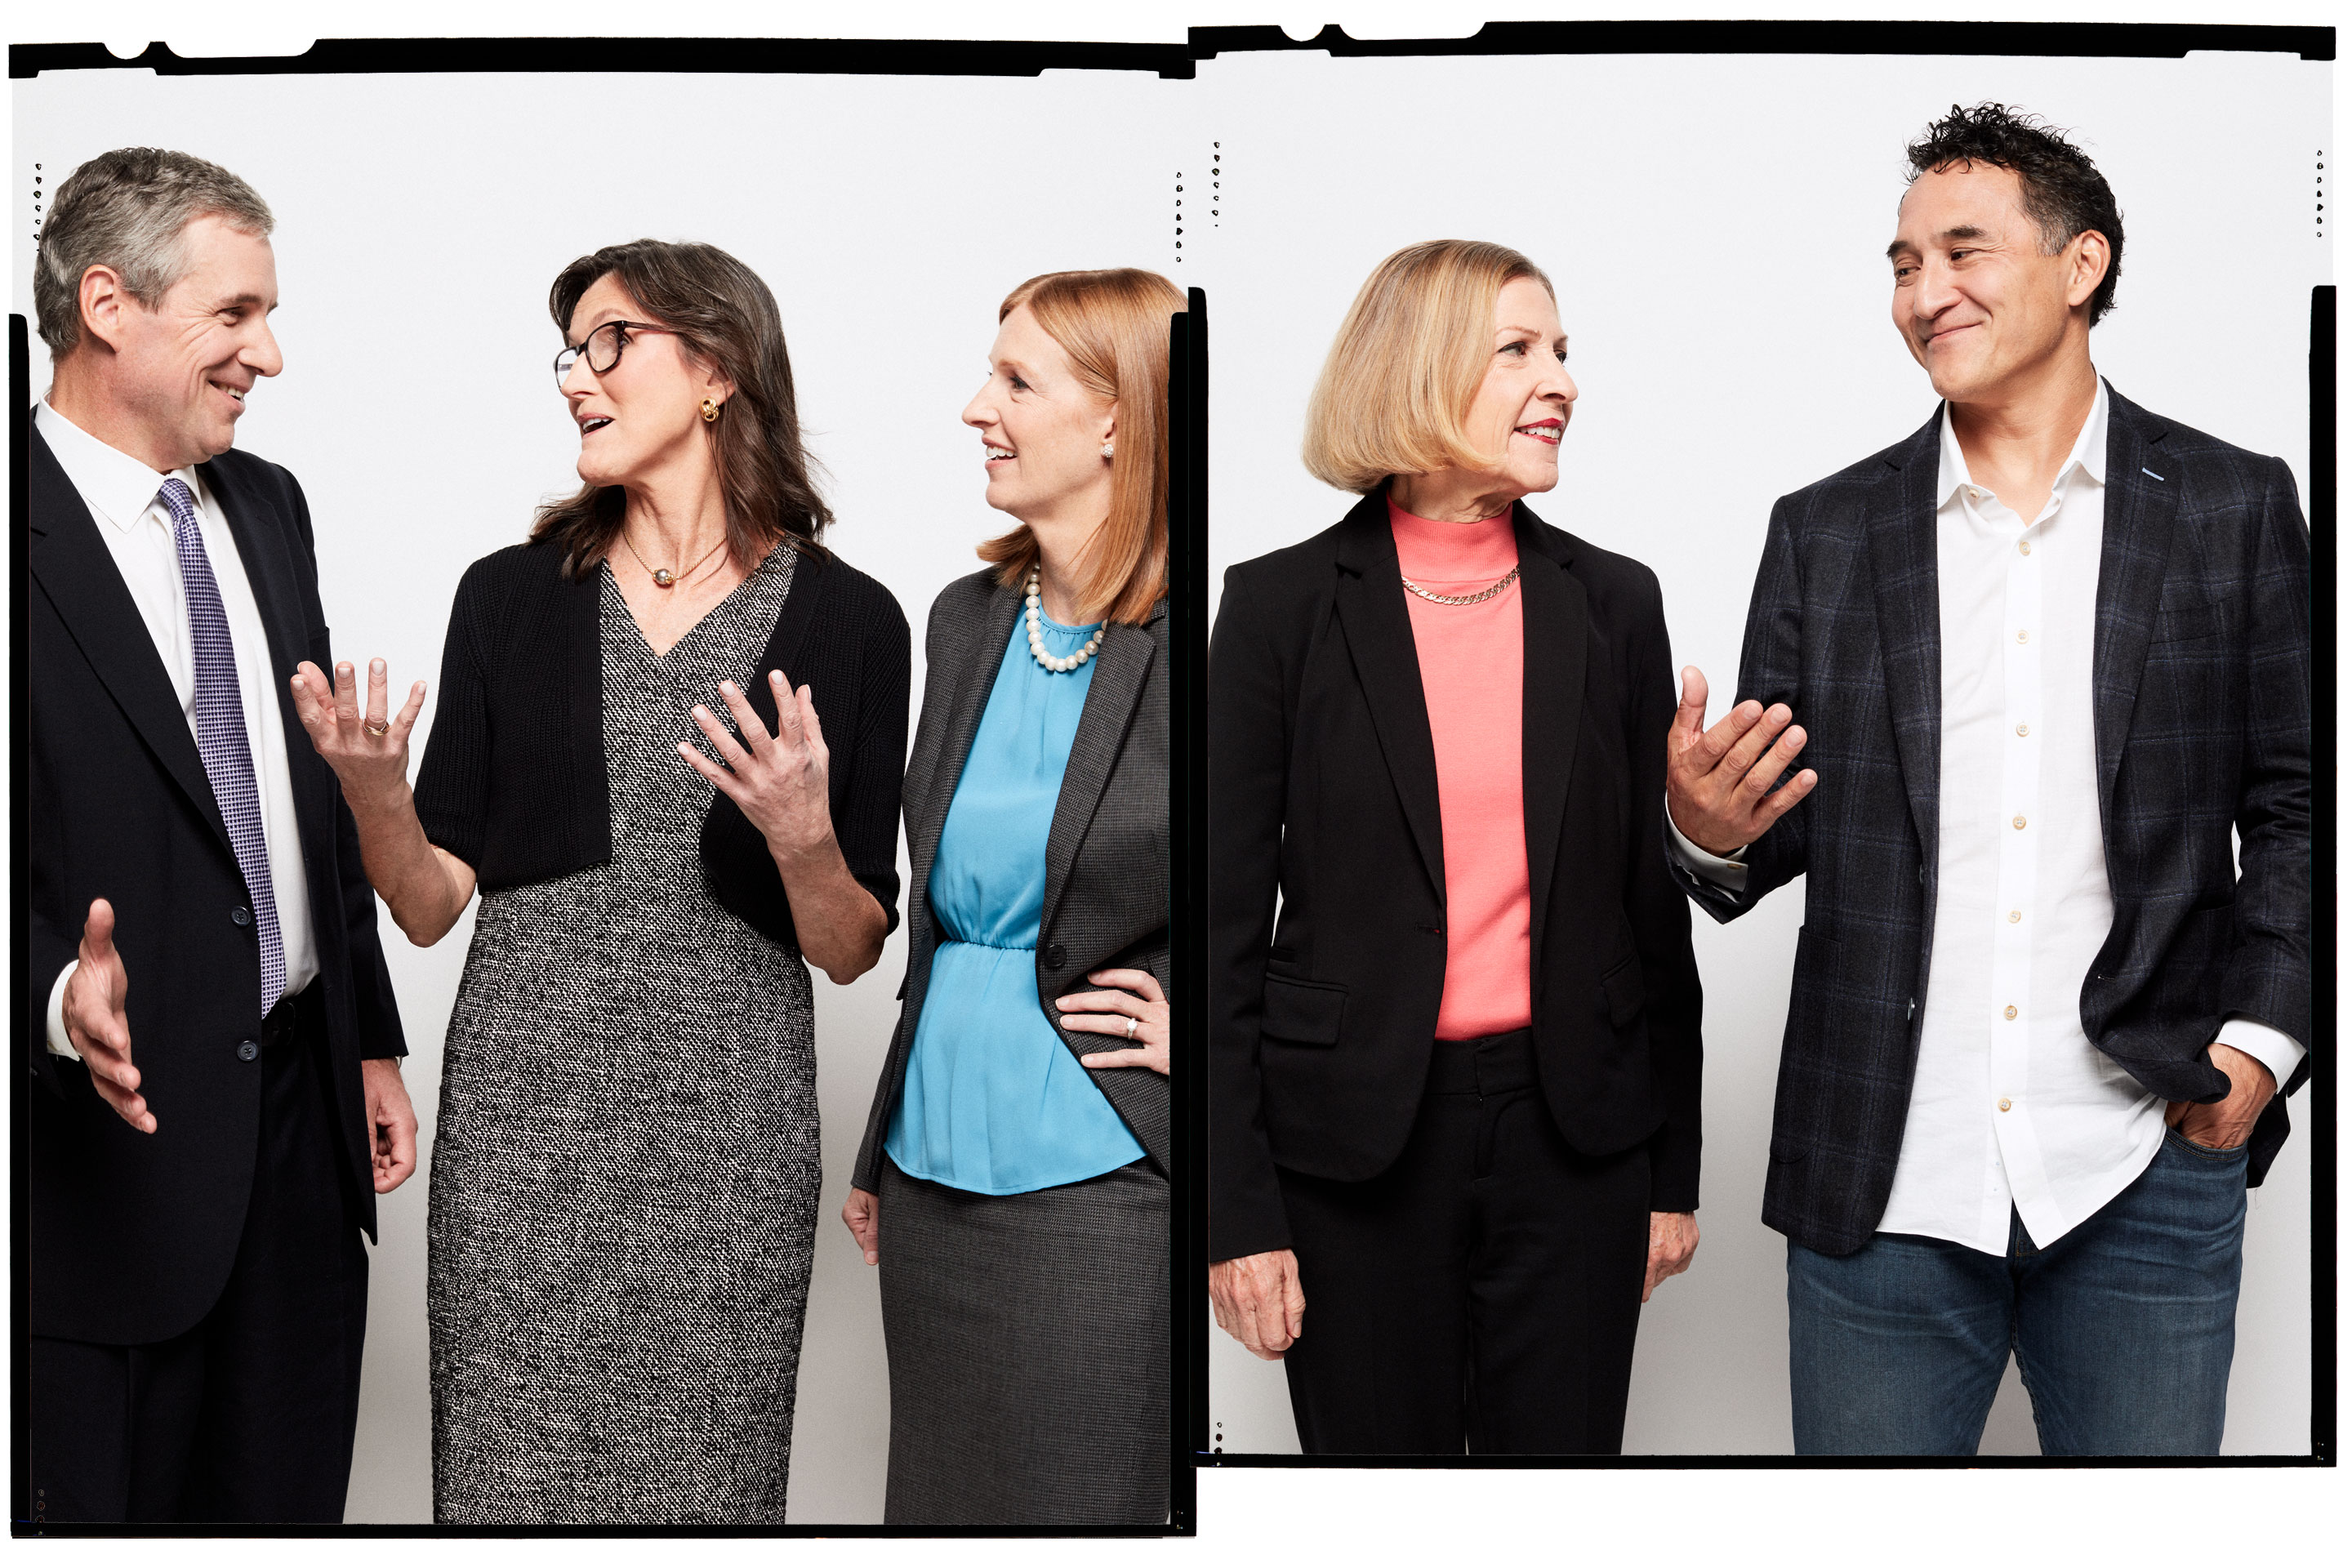 From, left: John Linehan, Chief Investment Officer, Equity, T. Rowe Price; Catherine Wood, CEO, ARK Invest; Lori Keith, Portfolio Manager and Senior Research Analyst, Parnassus Investments; Kate Warne, Principal and Investment Strategist, Edward Jones; Ed Sim, Founder and Managing Partner, Boldstart Ventures